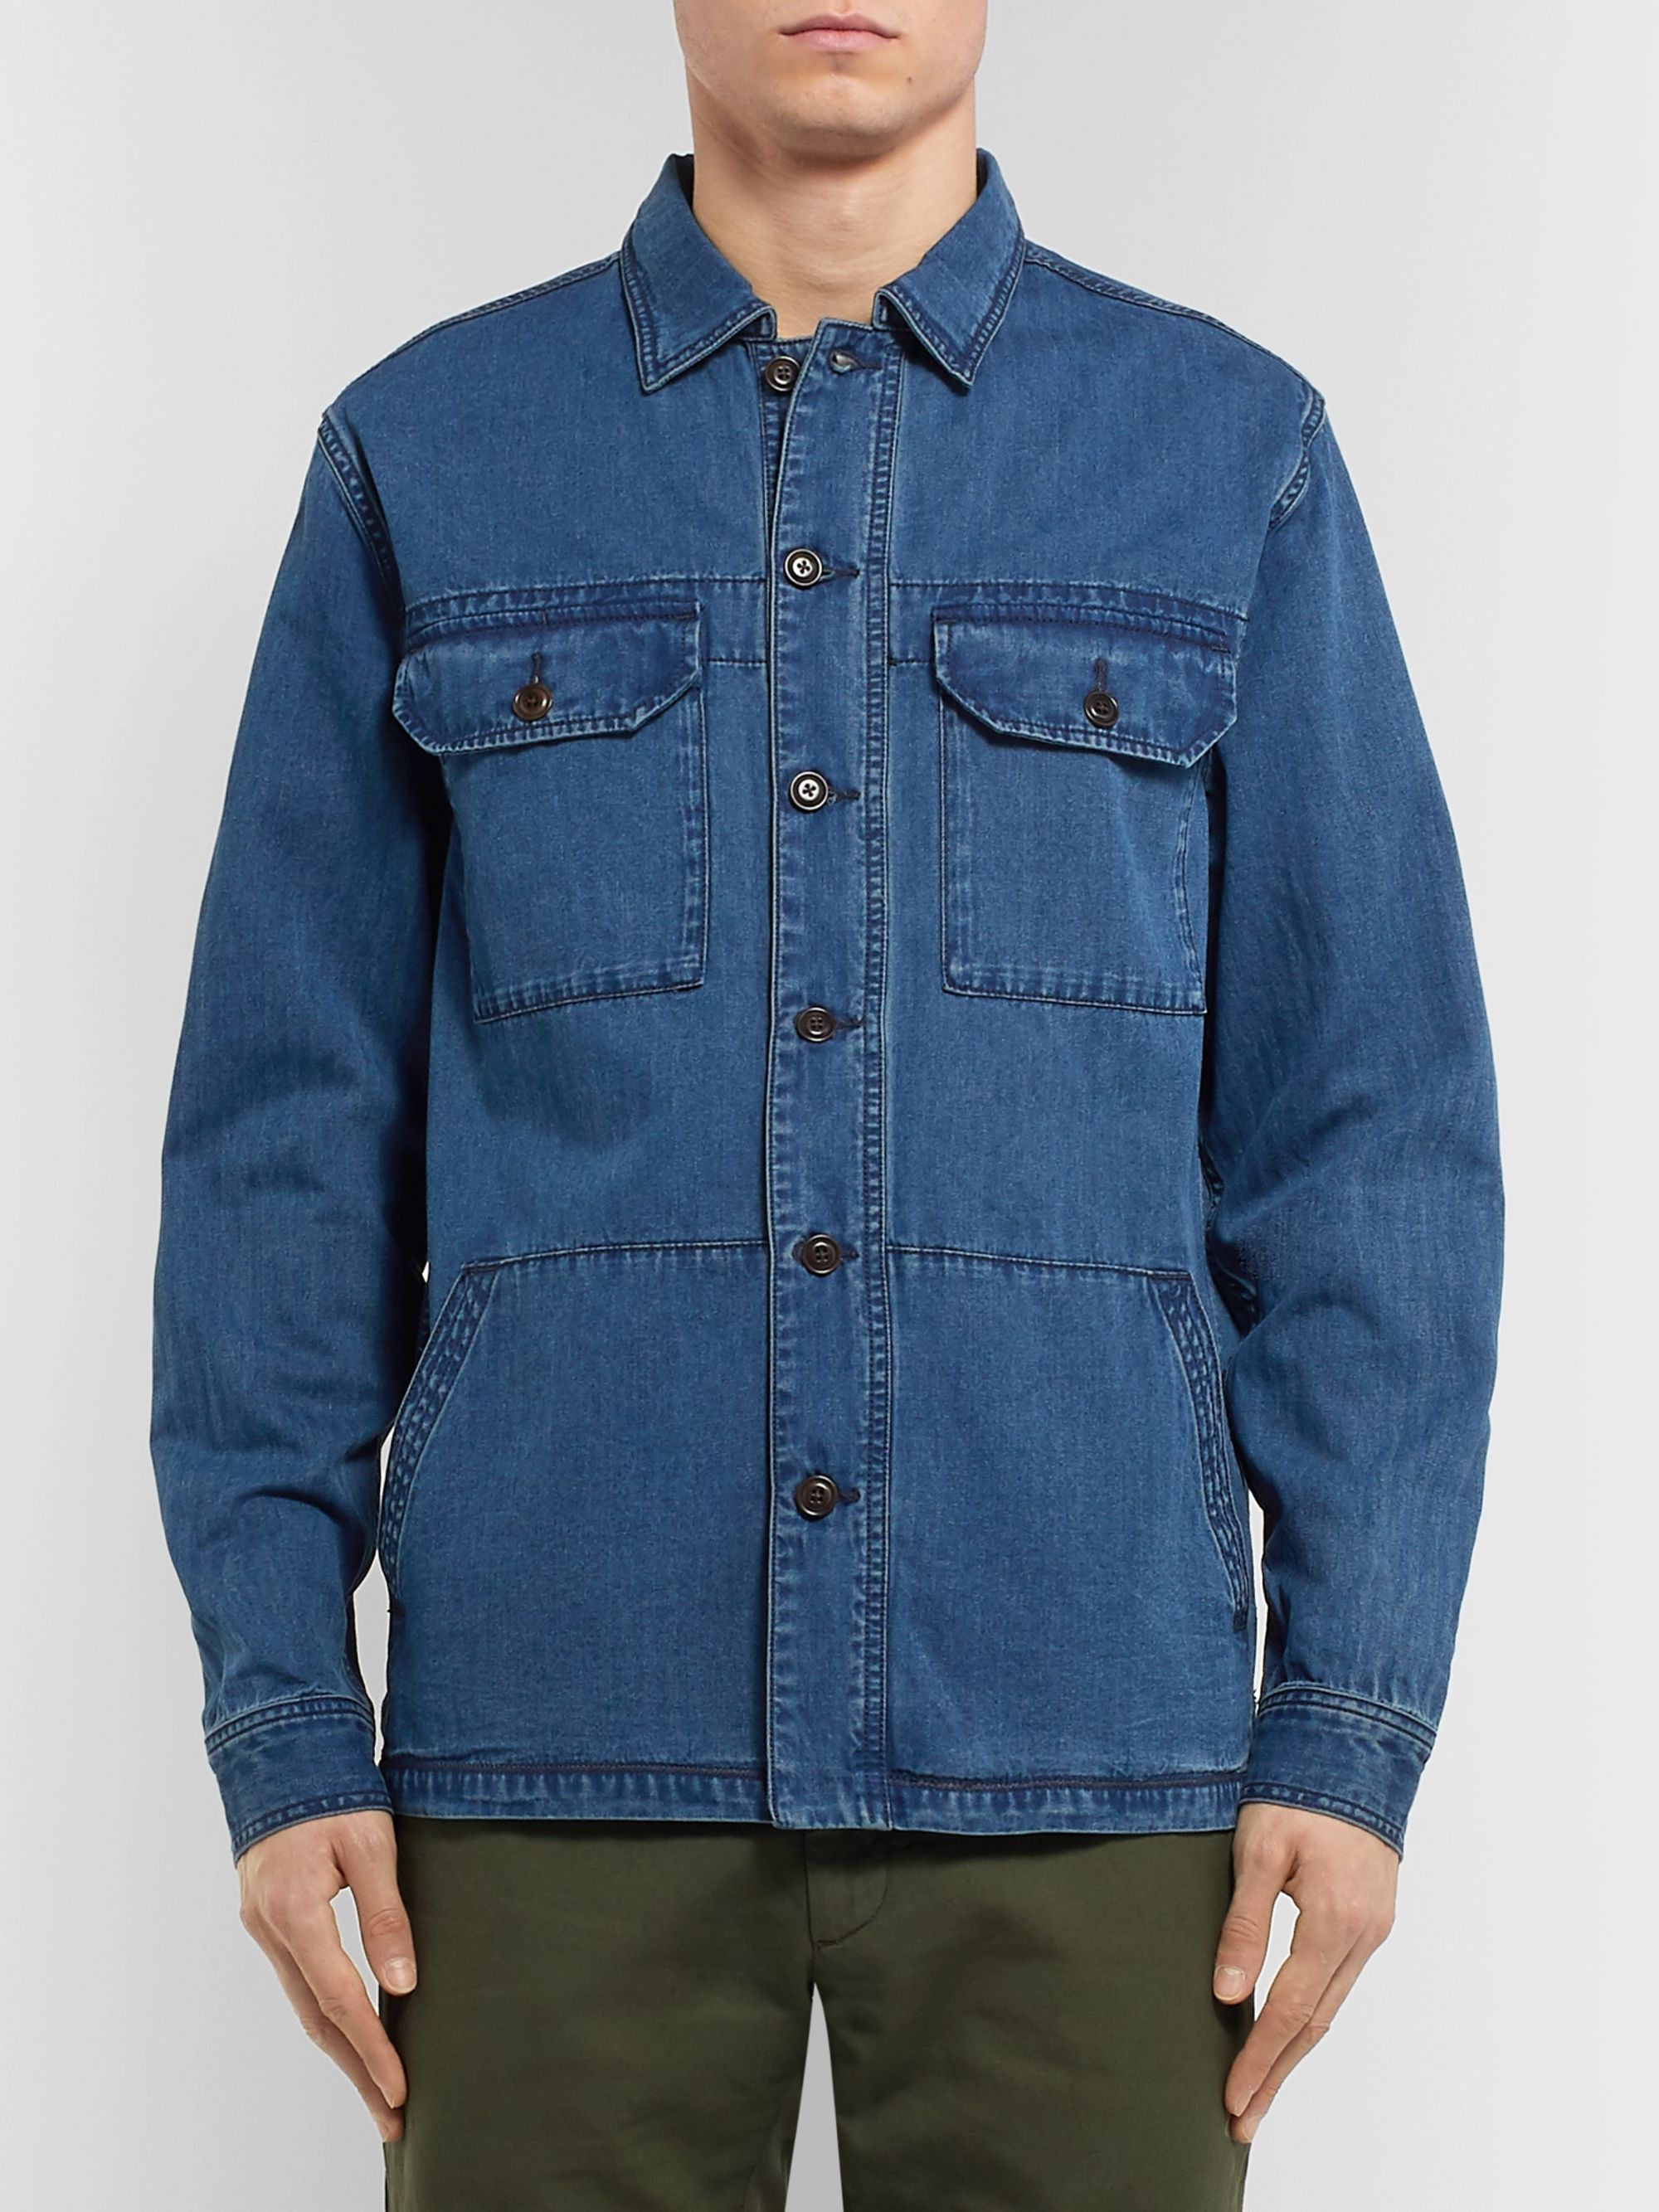 Faherty Corporal Indigo-Dyed Denim Shirt Jacket